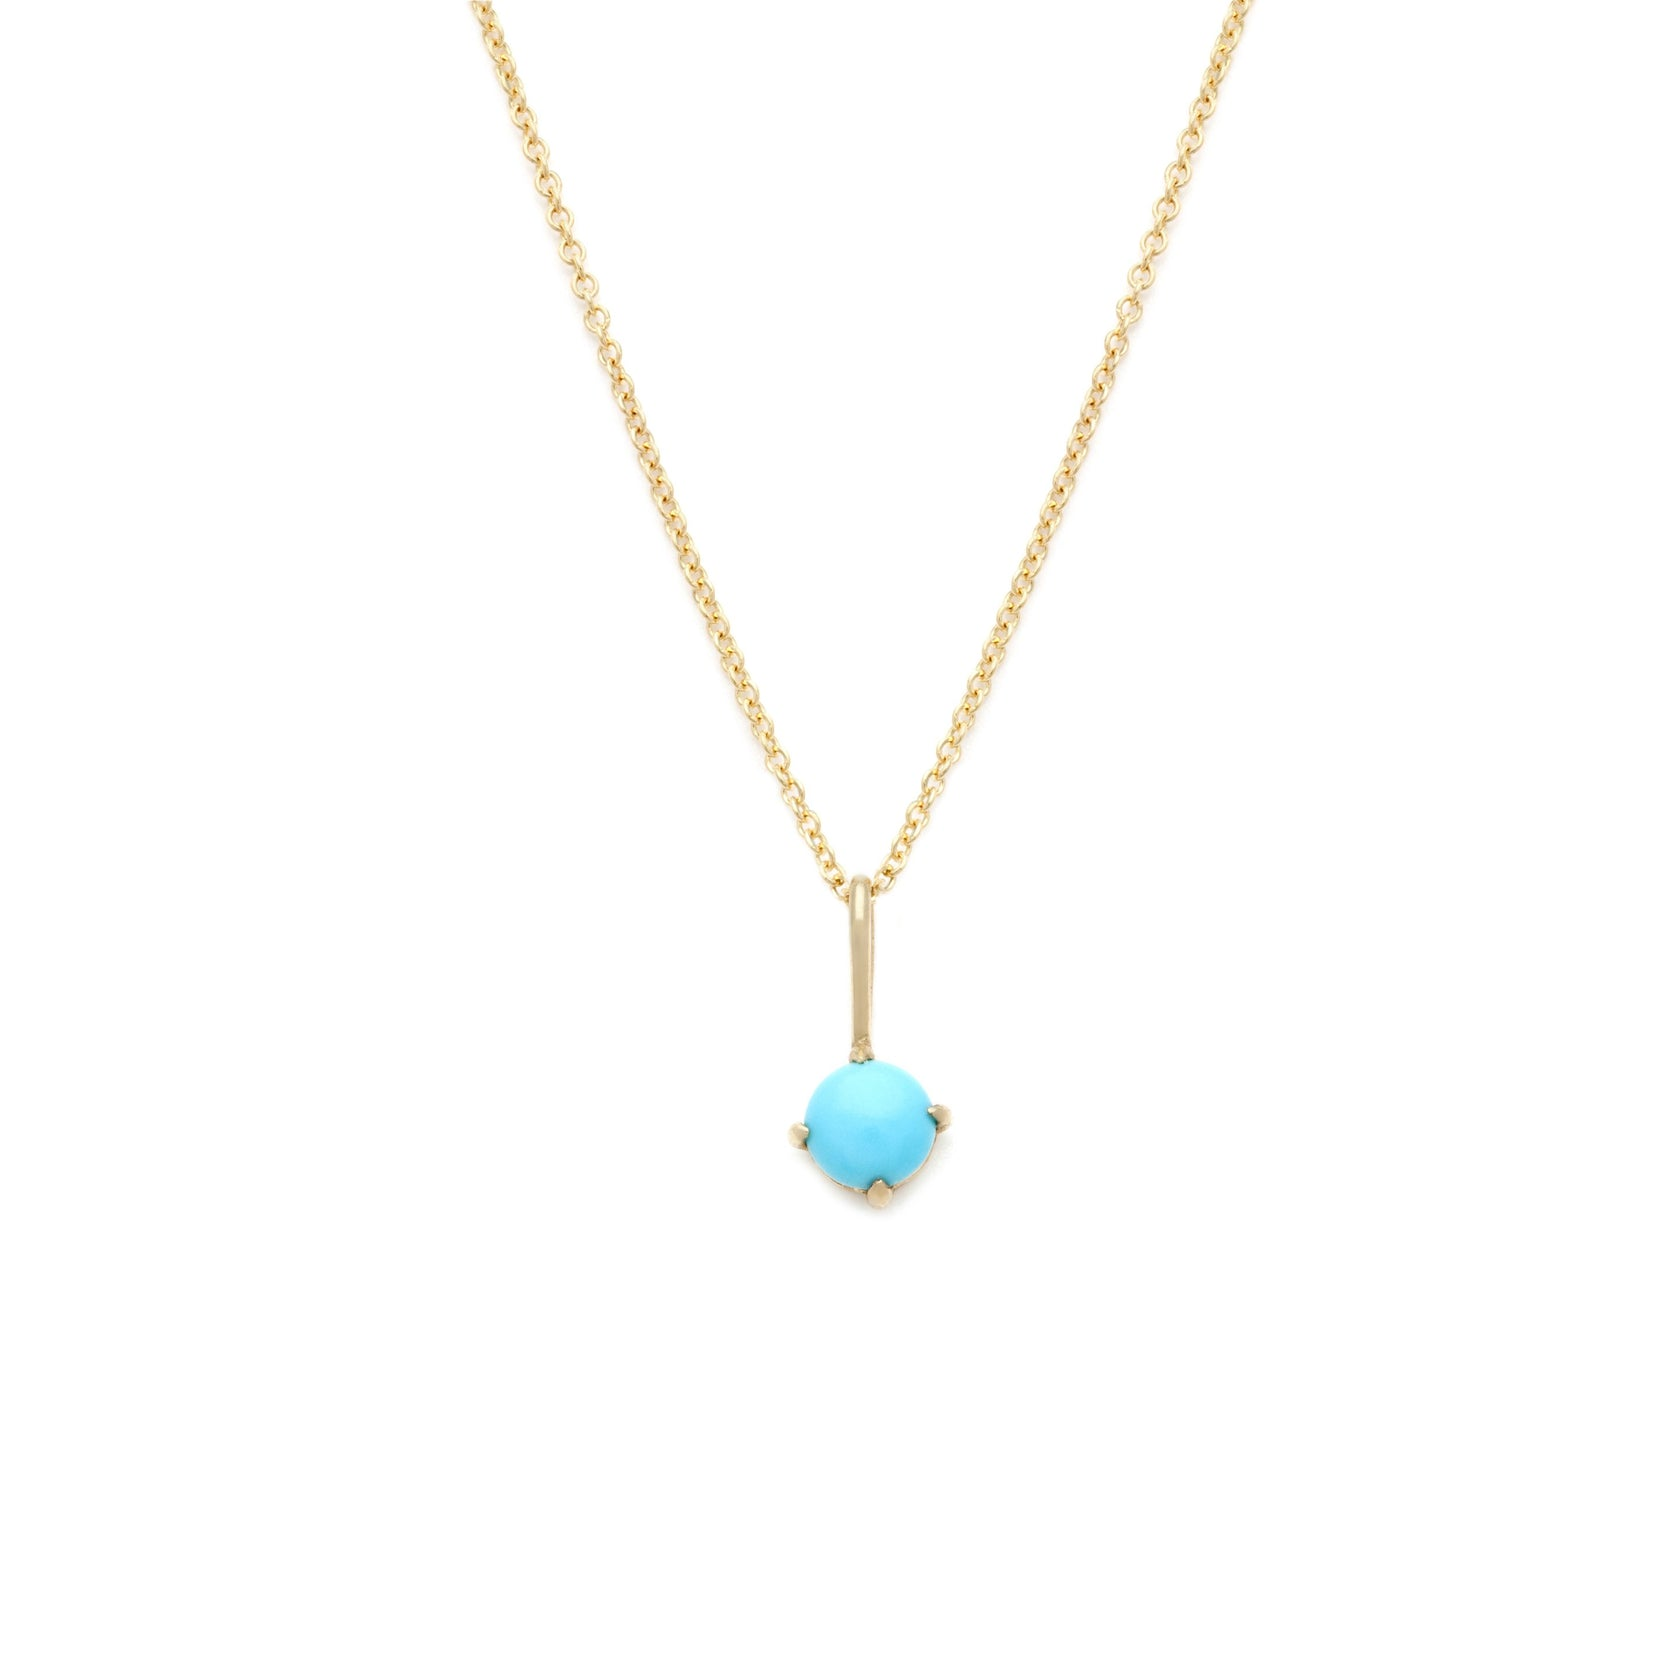 Turquoise Pendant - 14k Solid Gold